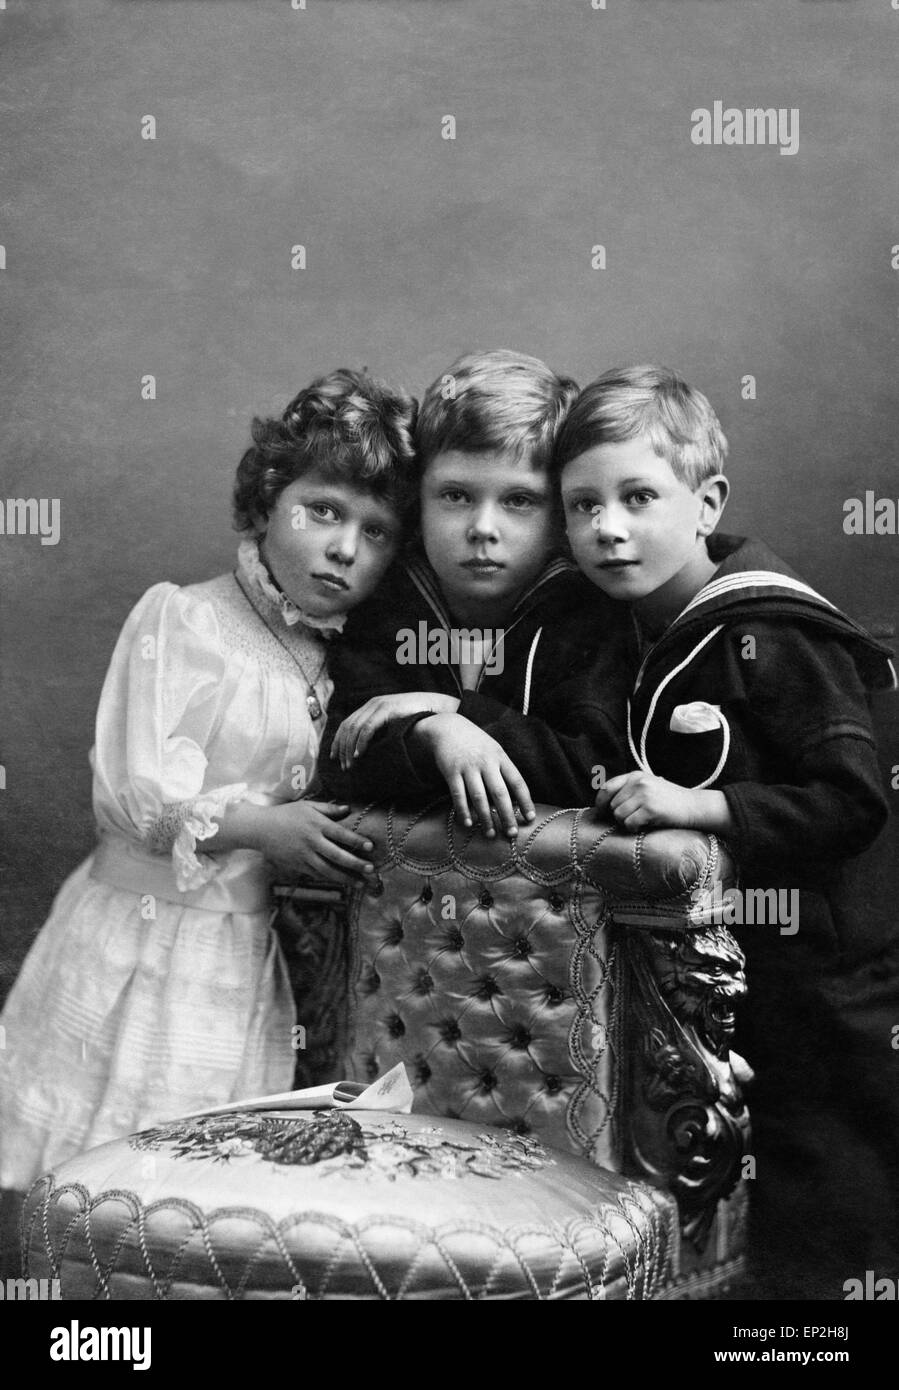 Prince of Wales with Prince Albert and Princess Mary pose for a portrait. - Stock Image